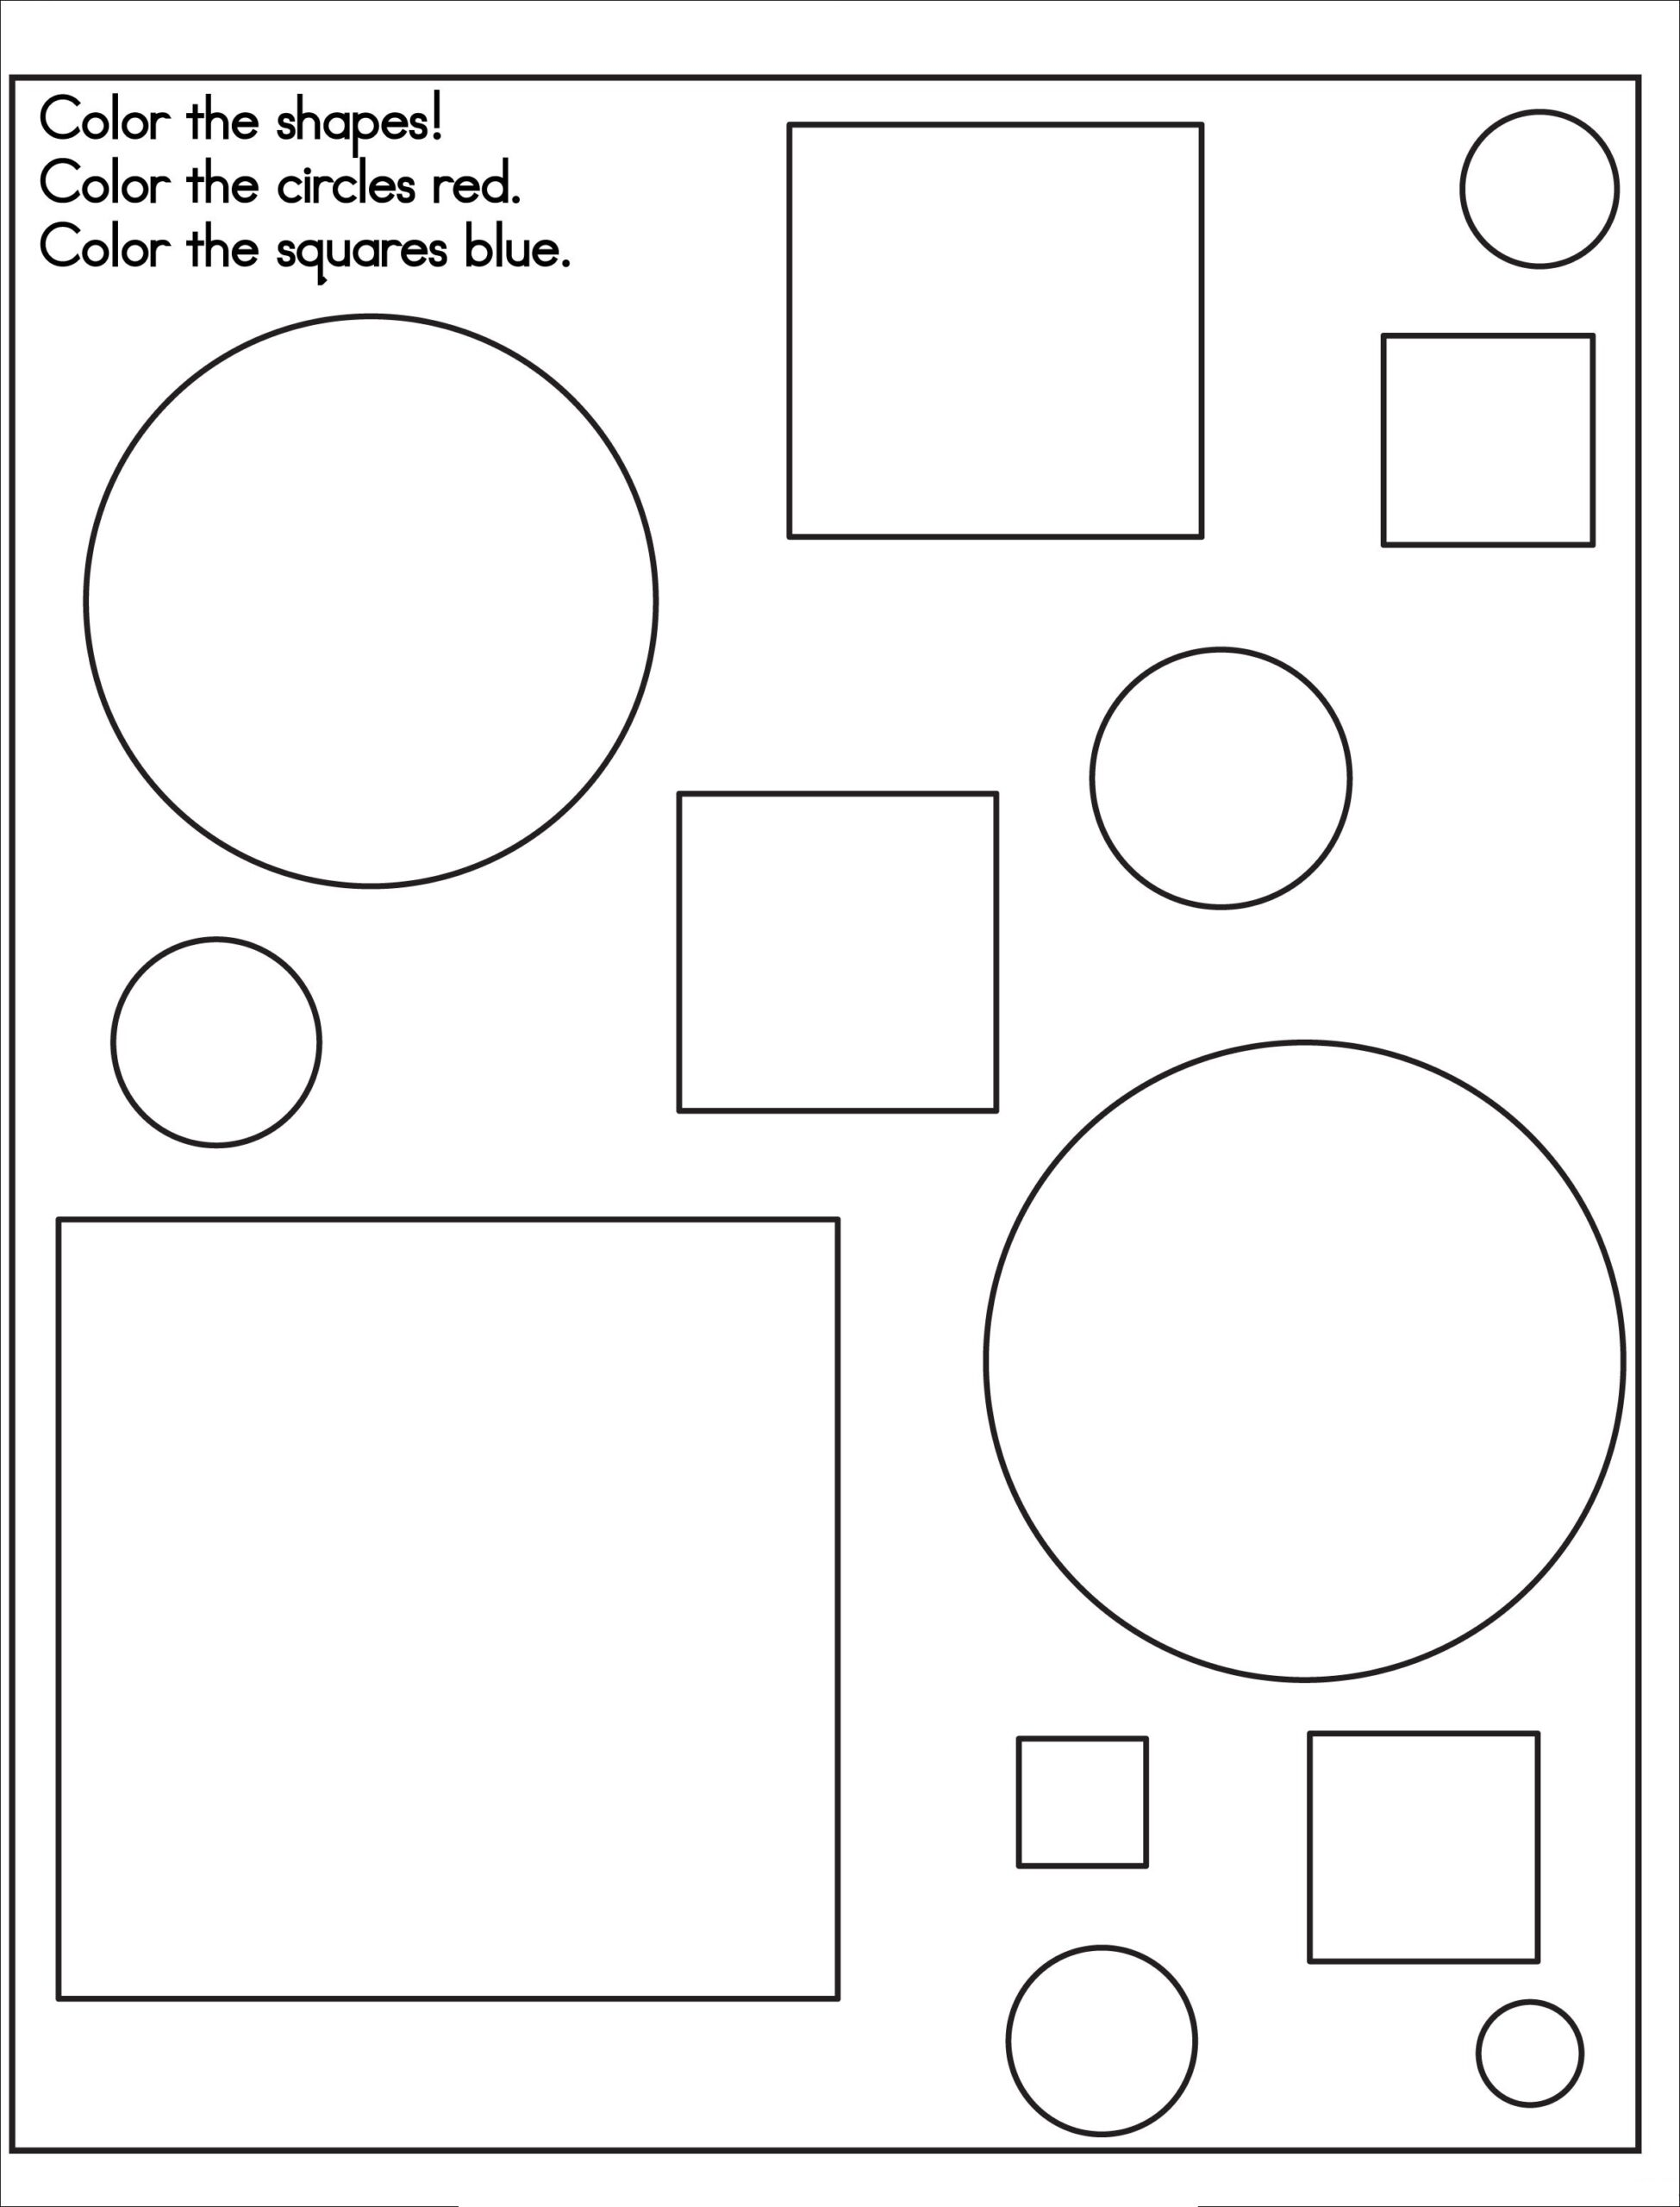 Basic Shapes Coloring Pages